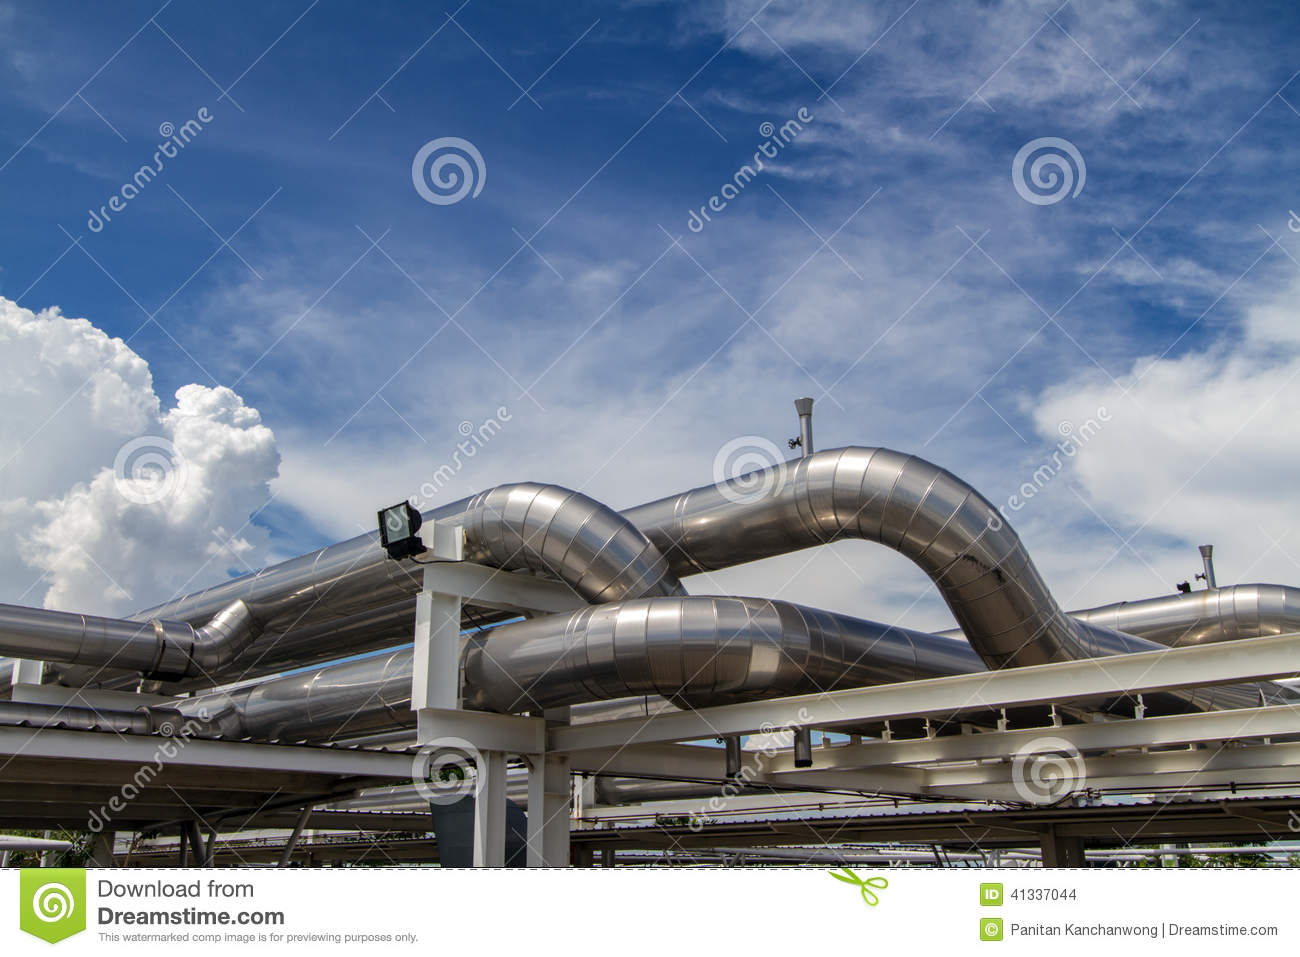 Cooling Pipe Stock Photo Image: 41337044 #274C81